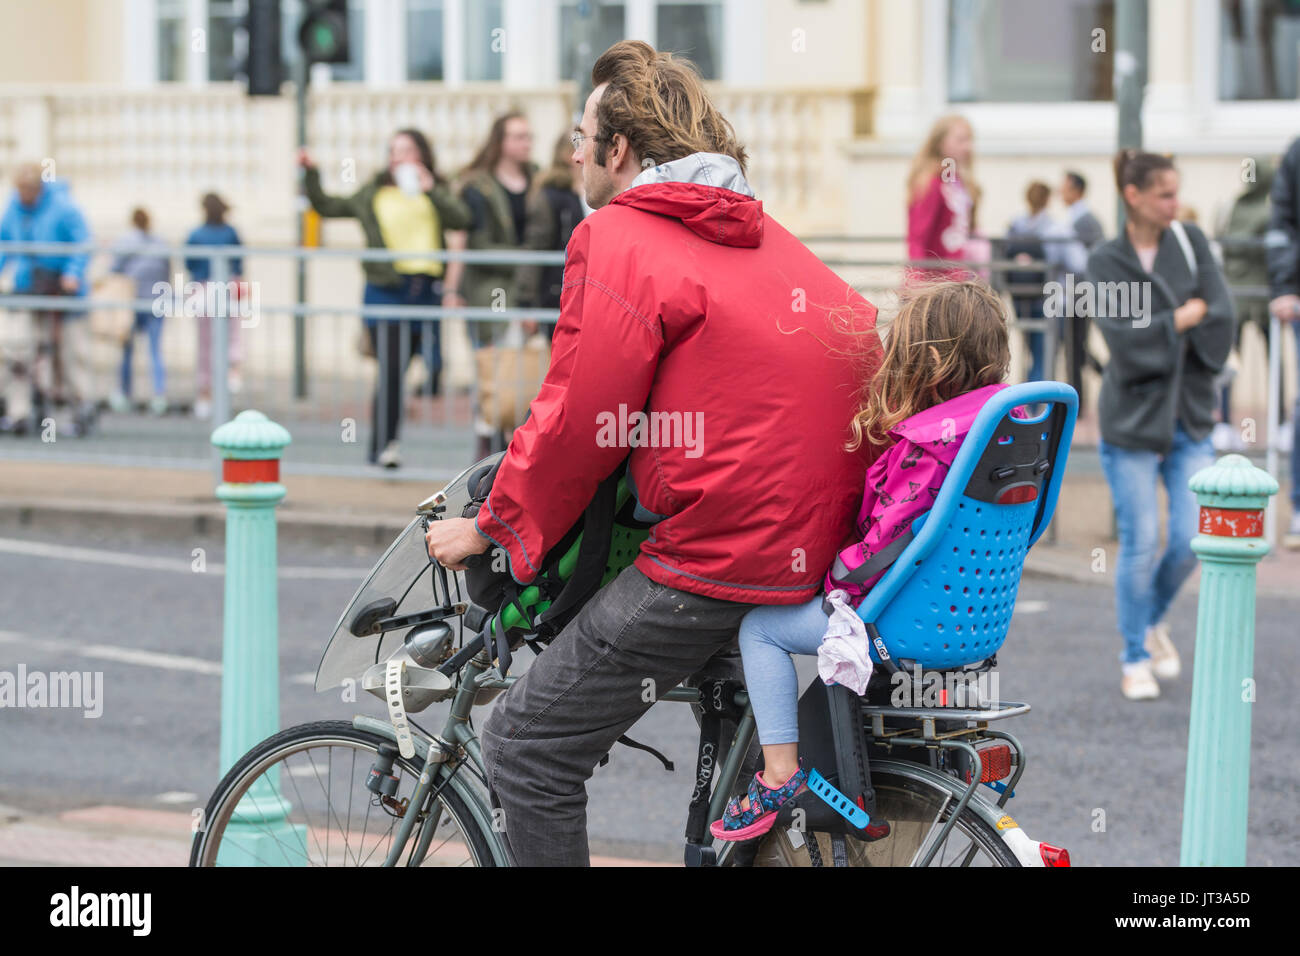 Man cycling with a child in a child's seat, both not wearing a helmet. Irresponsible cyclist. - Stock Image